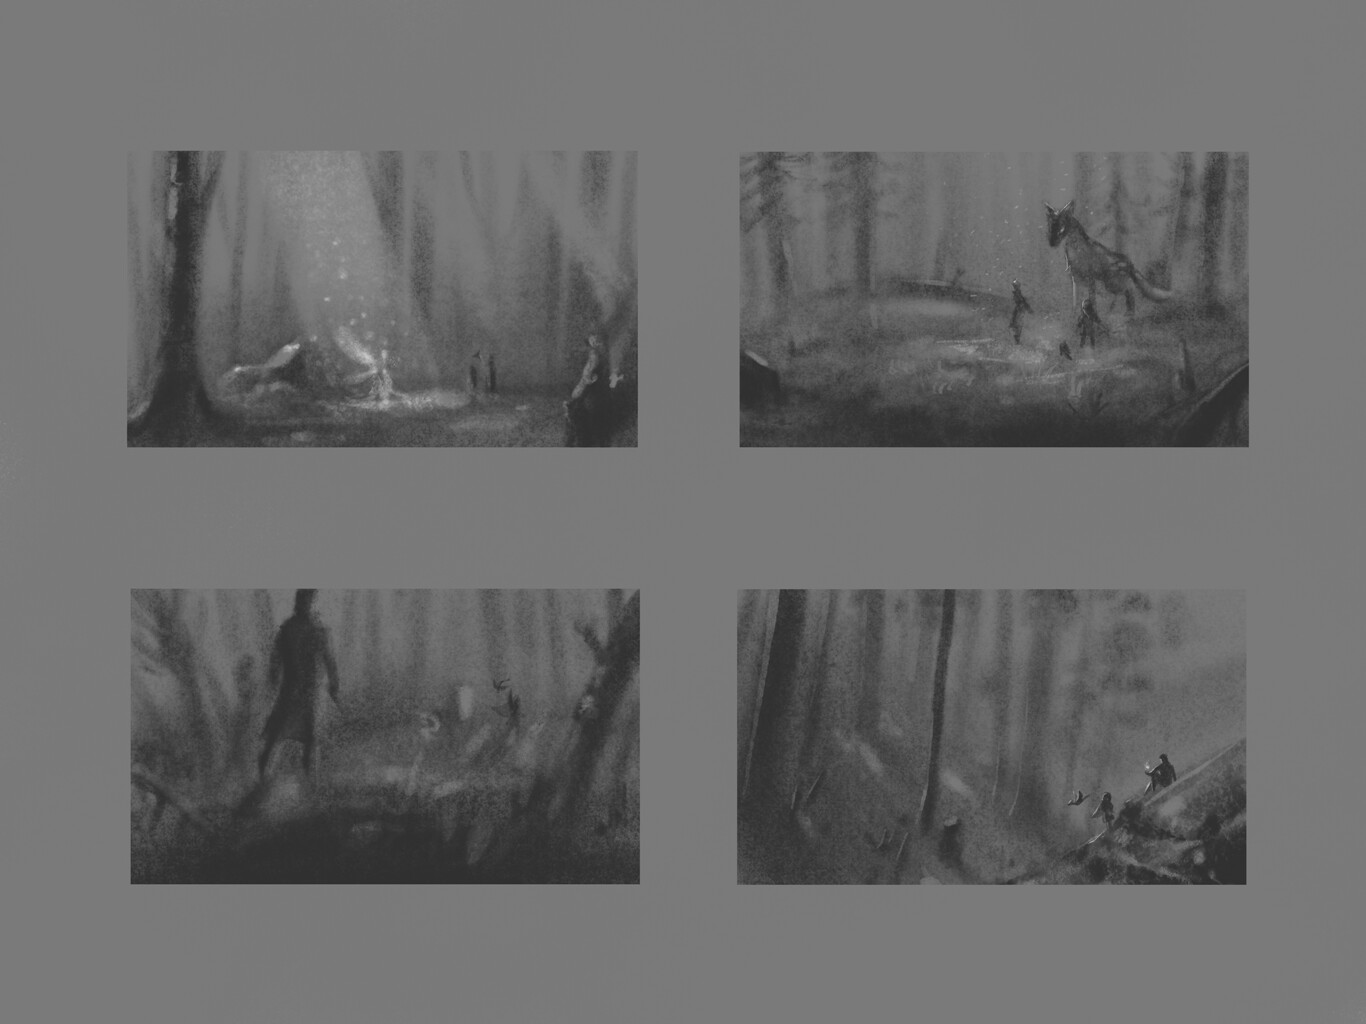 Quick sketches of the cousins traveling through the forest